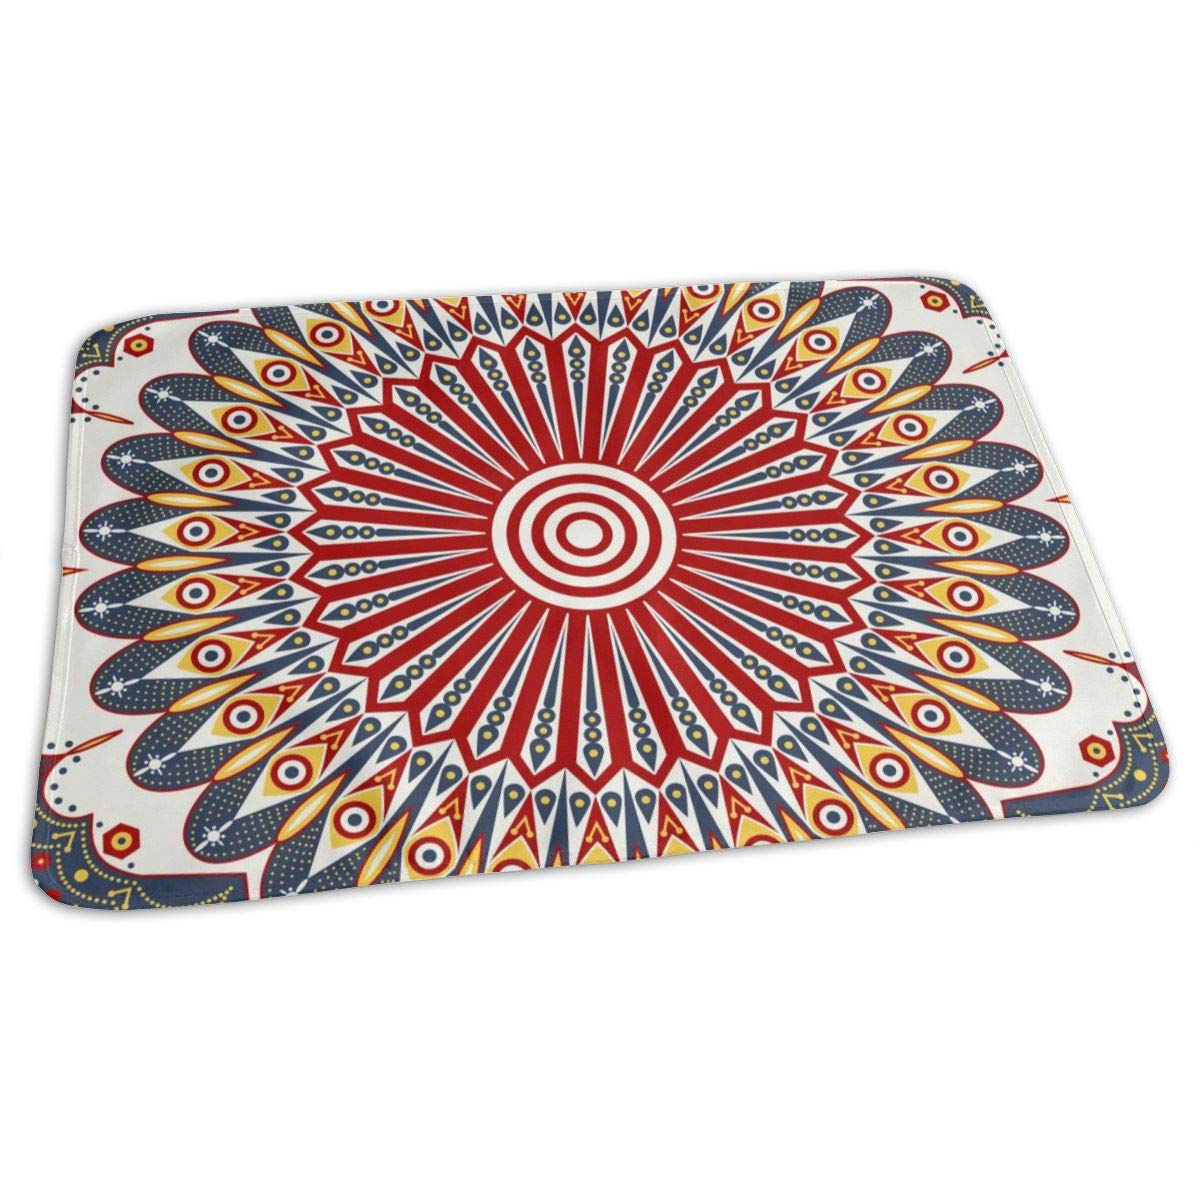 Osvbs Lovely Baby Reusable Waterproof Portable Colorful Ethnic Arabesque Patterned Changing Pad Home Travel 27.5''x19.7'' by Osvbs